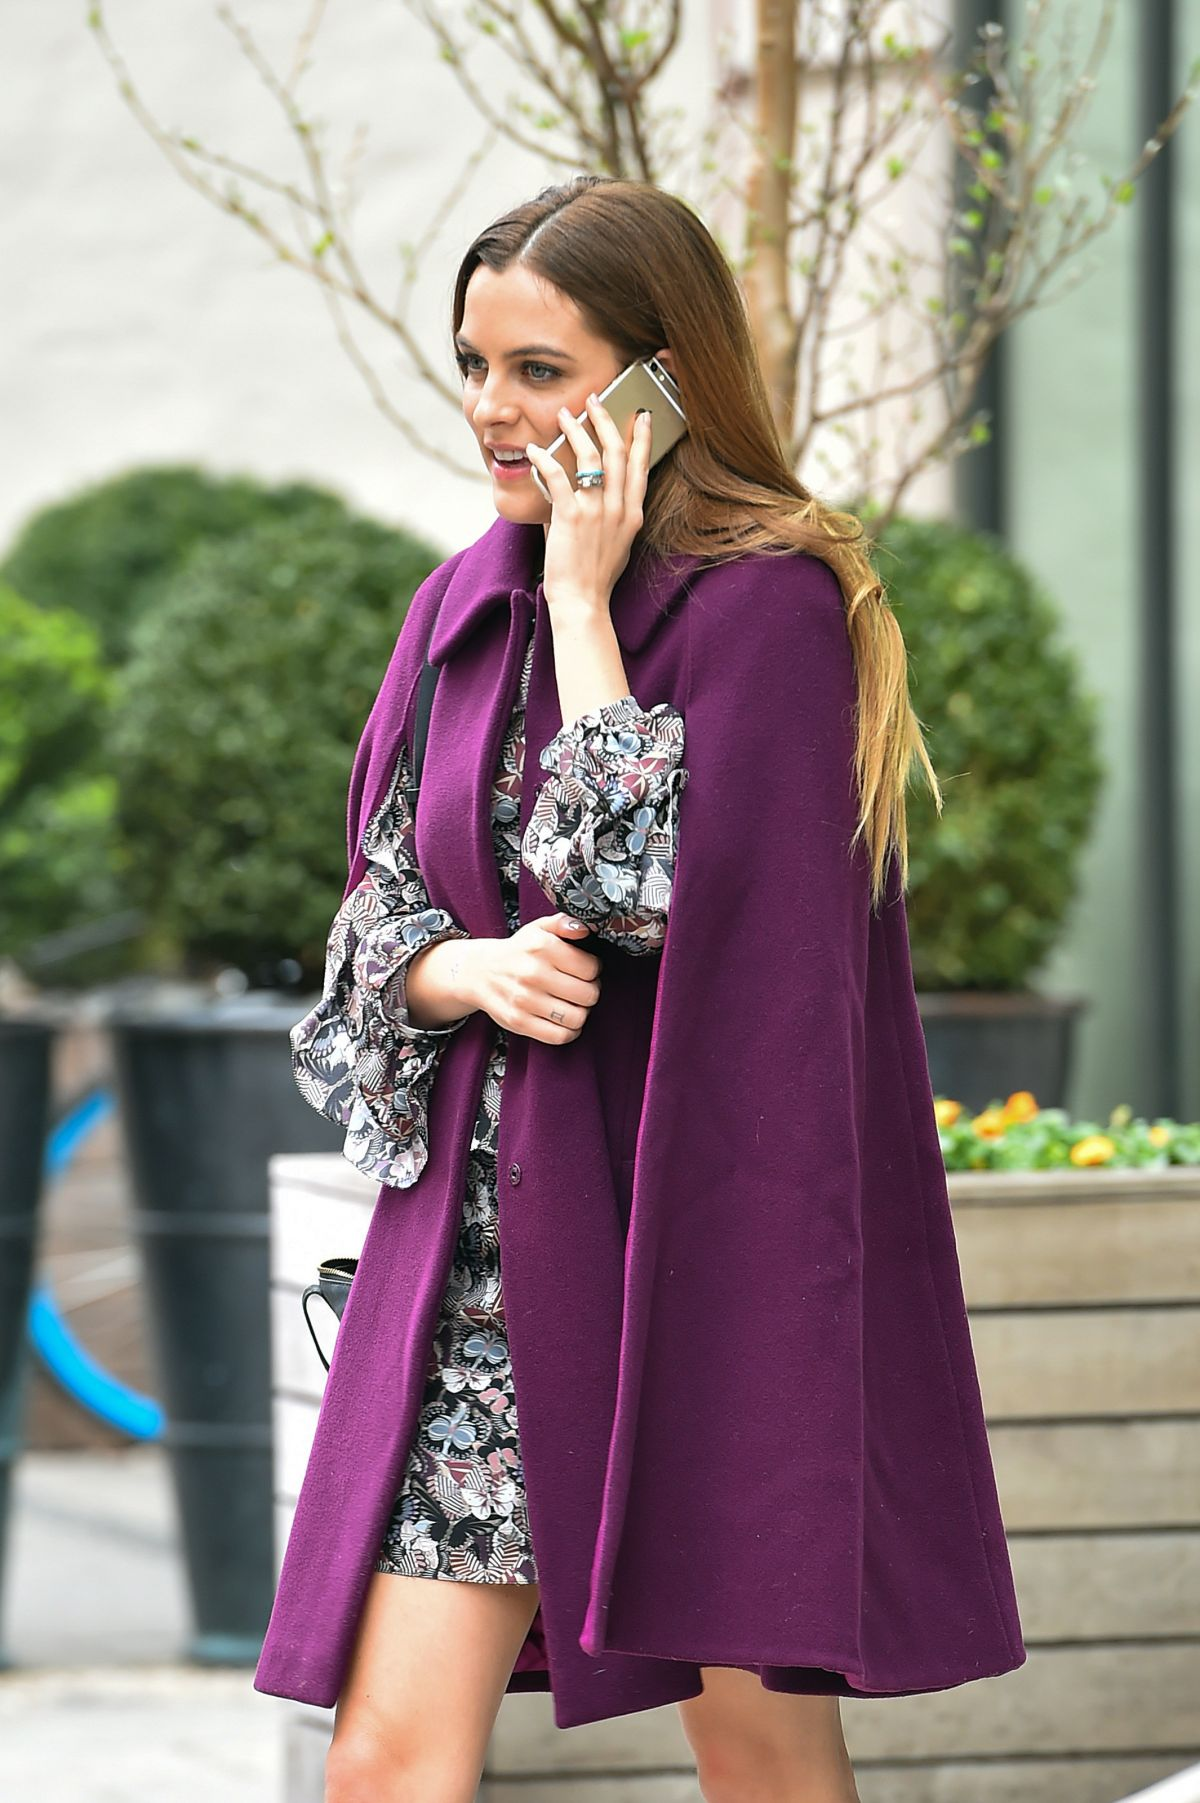 RILEY KEOUGH Out in New York 03/31/2016